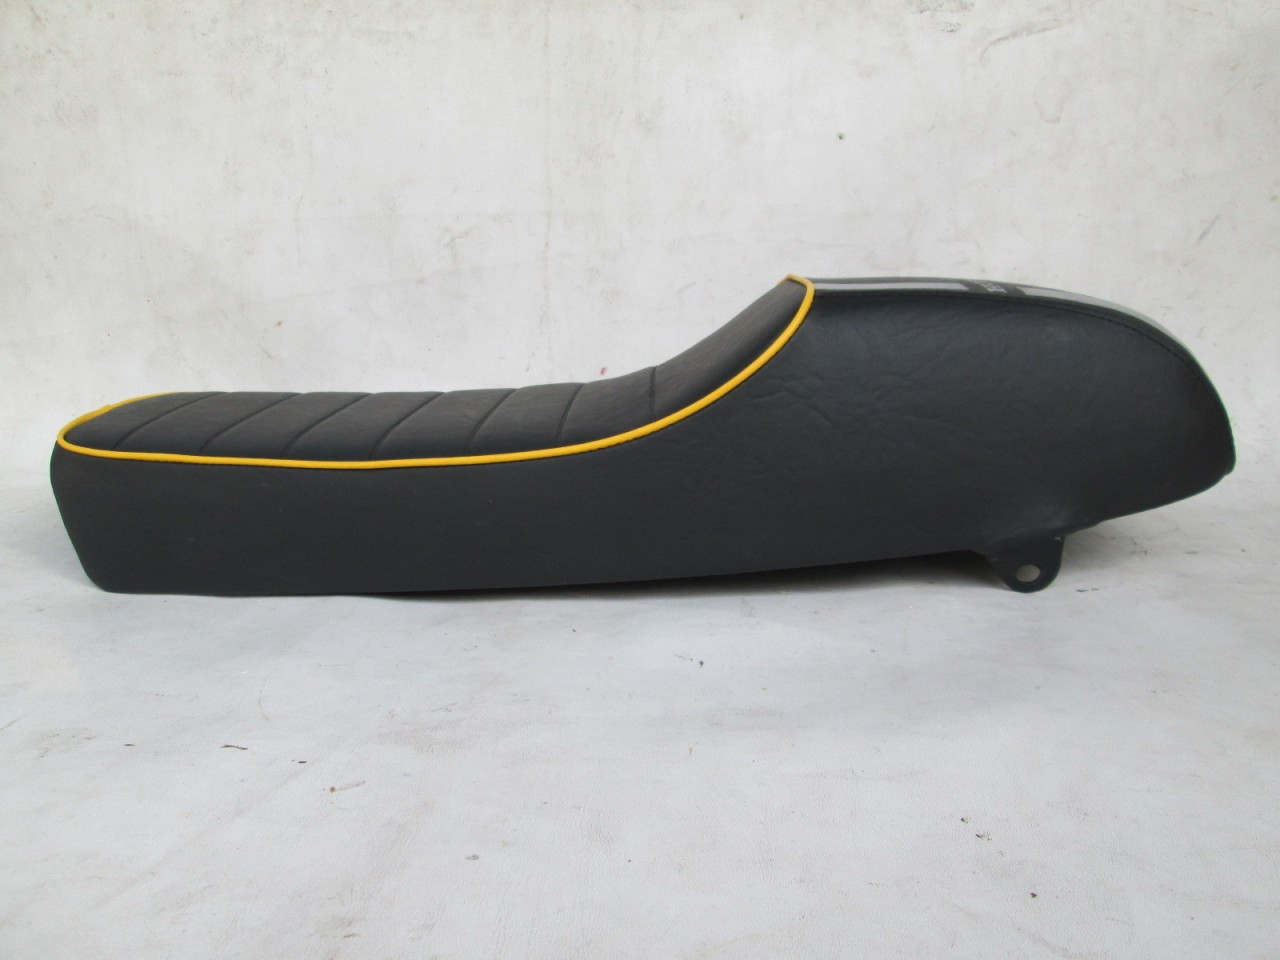 1968 Honda CB175 K0 CB175K0 Cafe racer seat with modified seat pan #4094